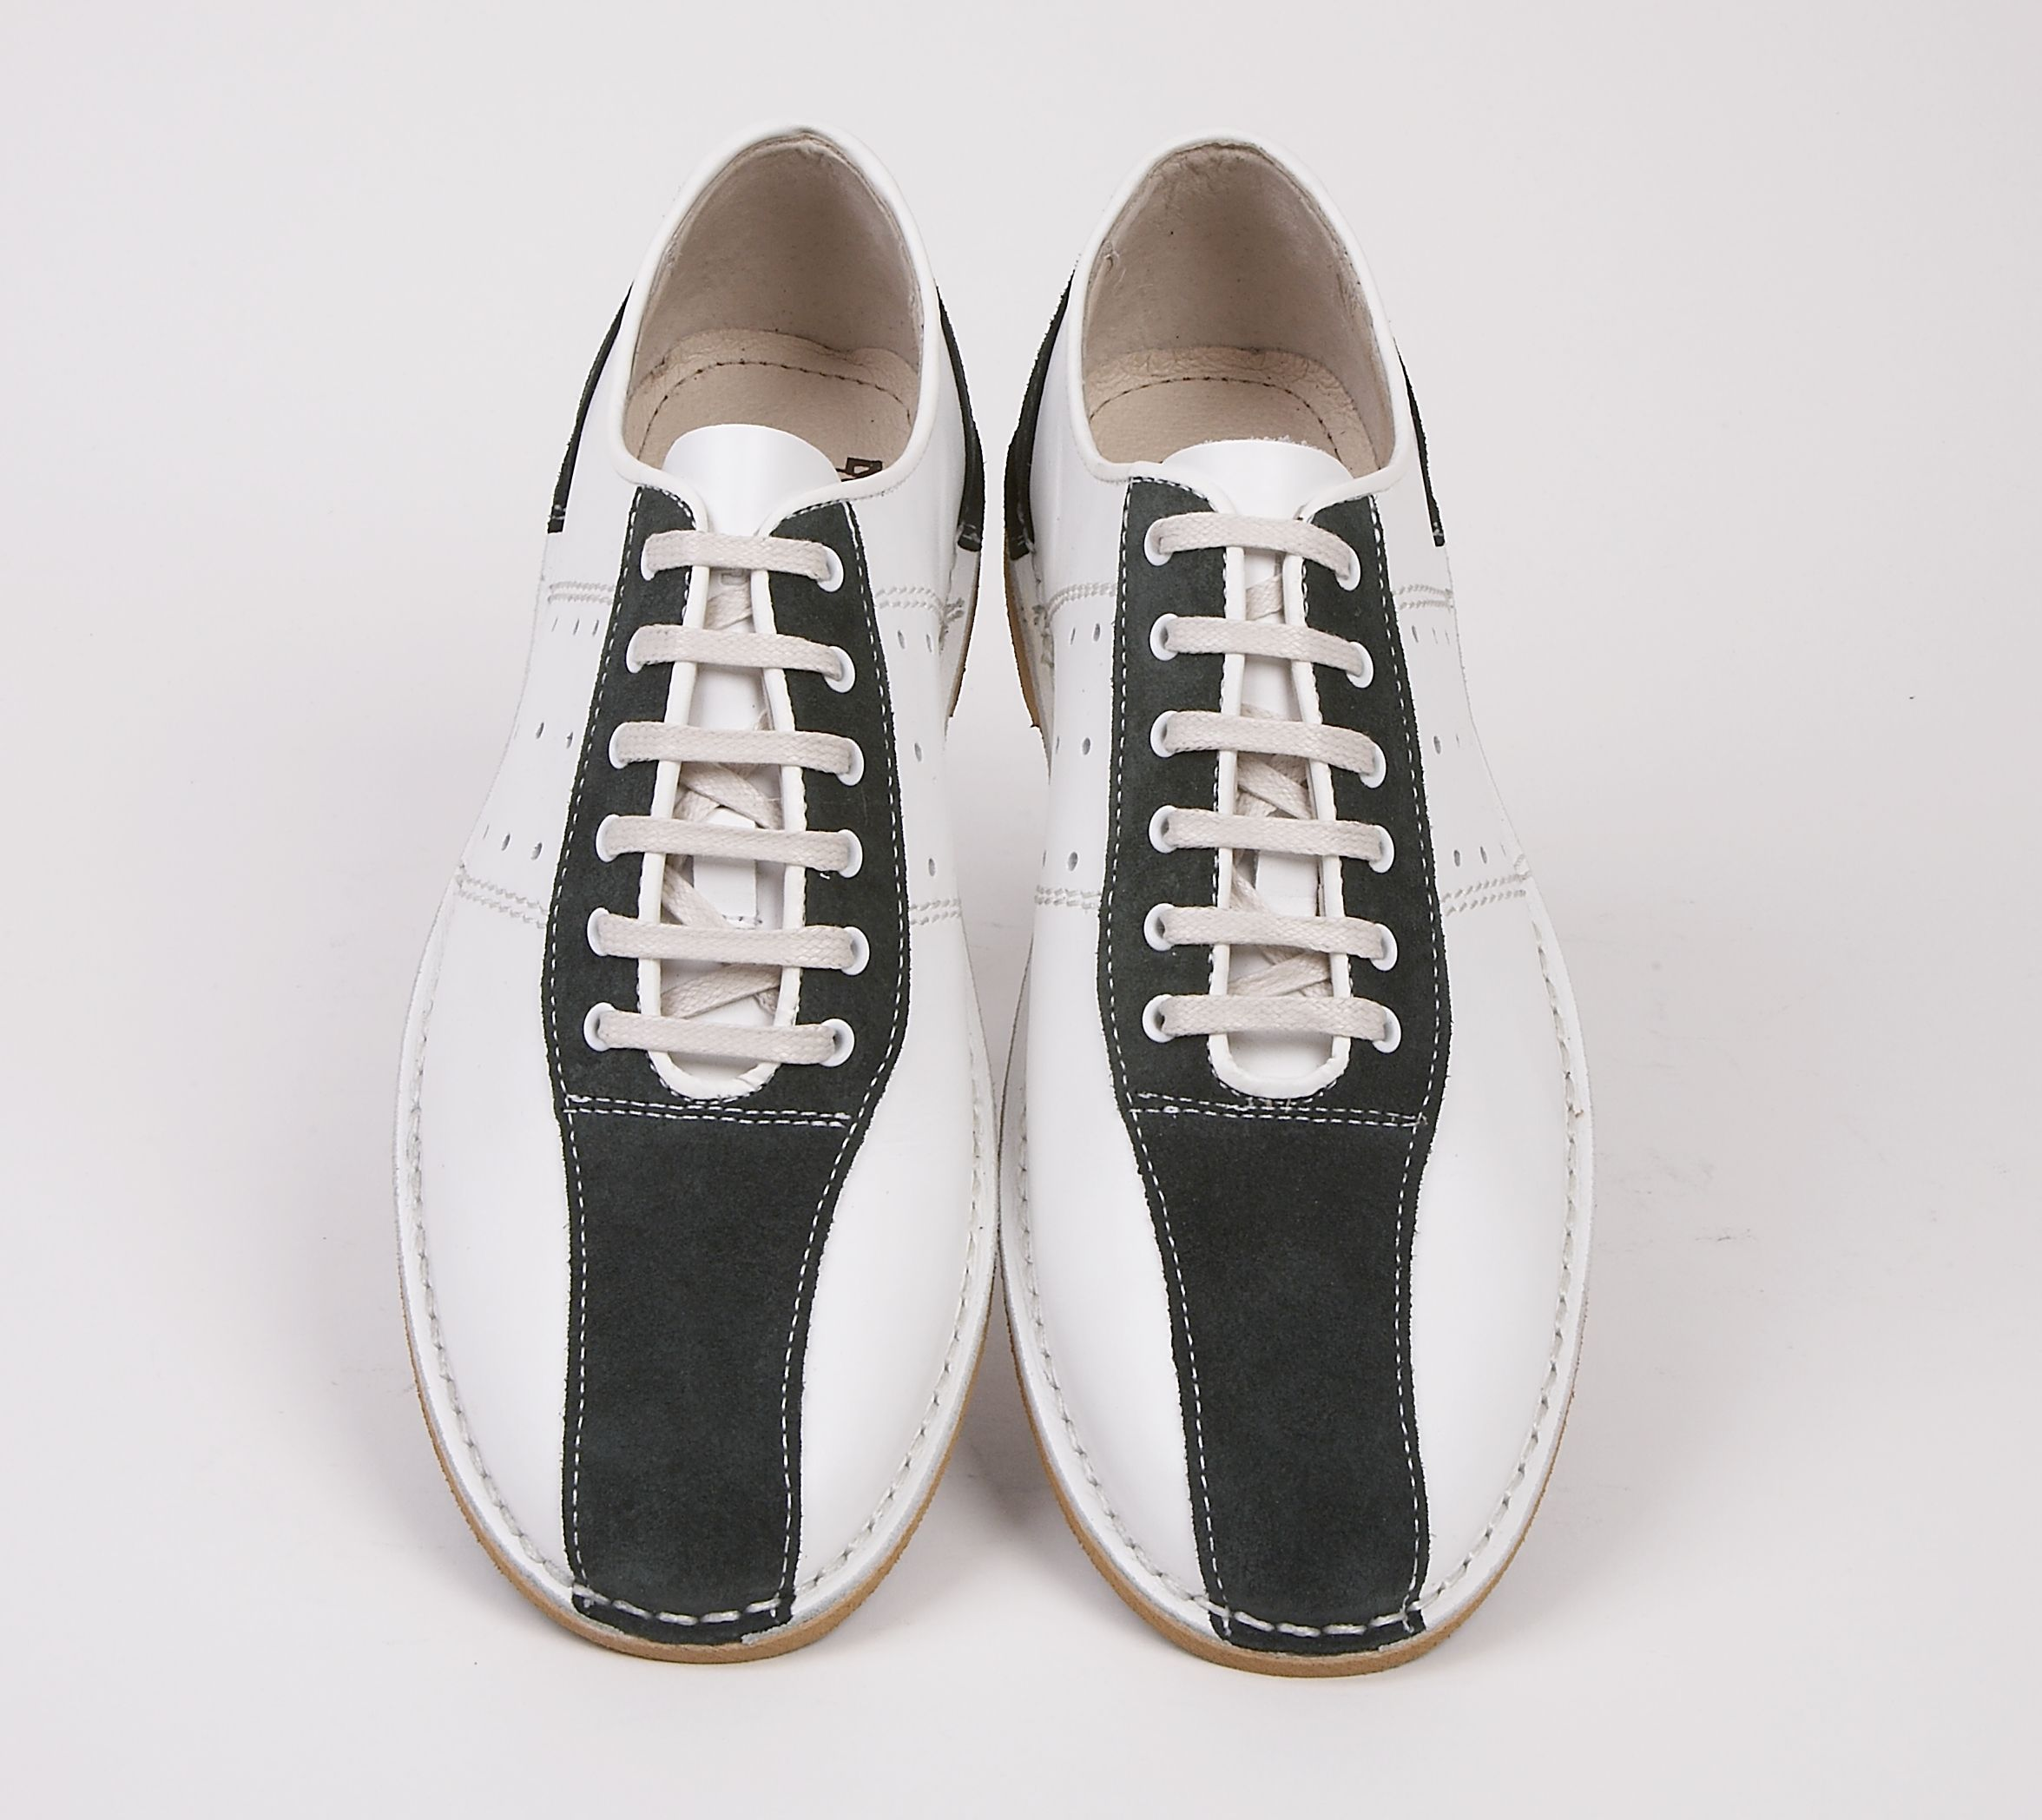 Watts white & green bowling shoe by Delicious Junction.